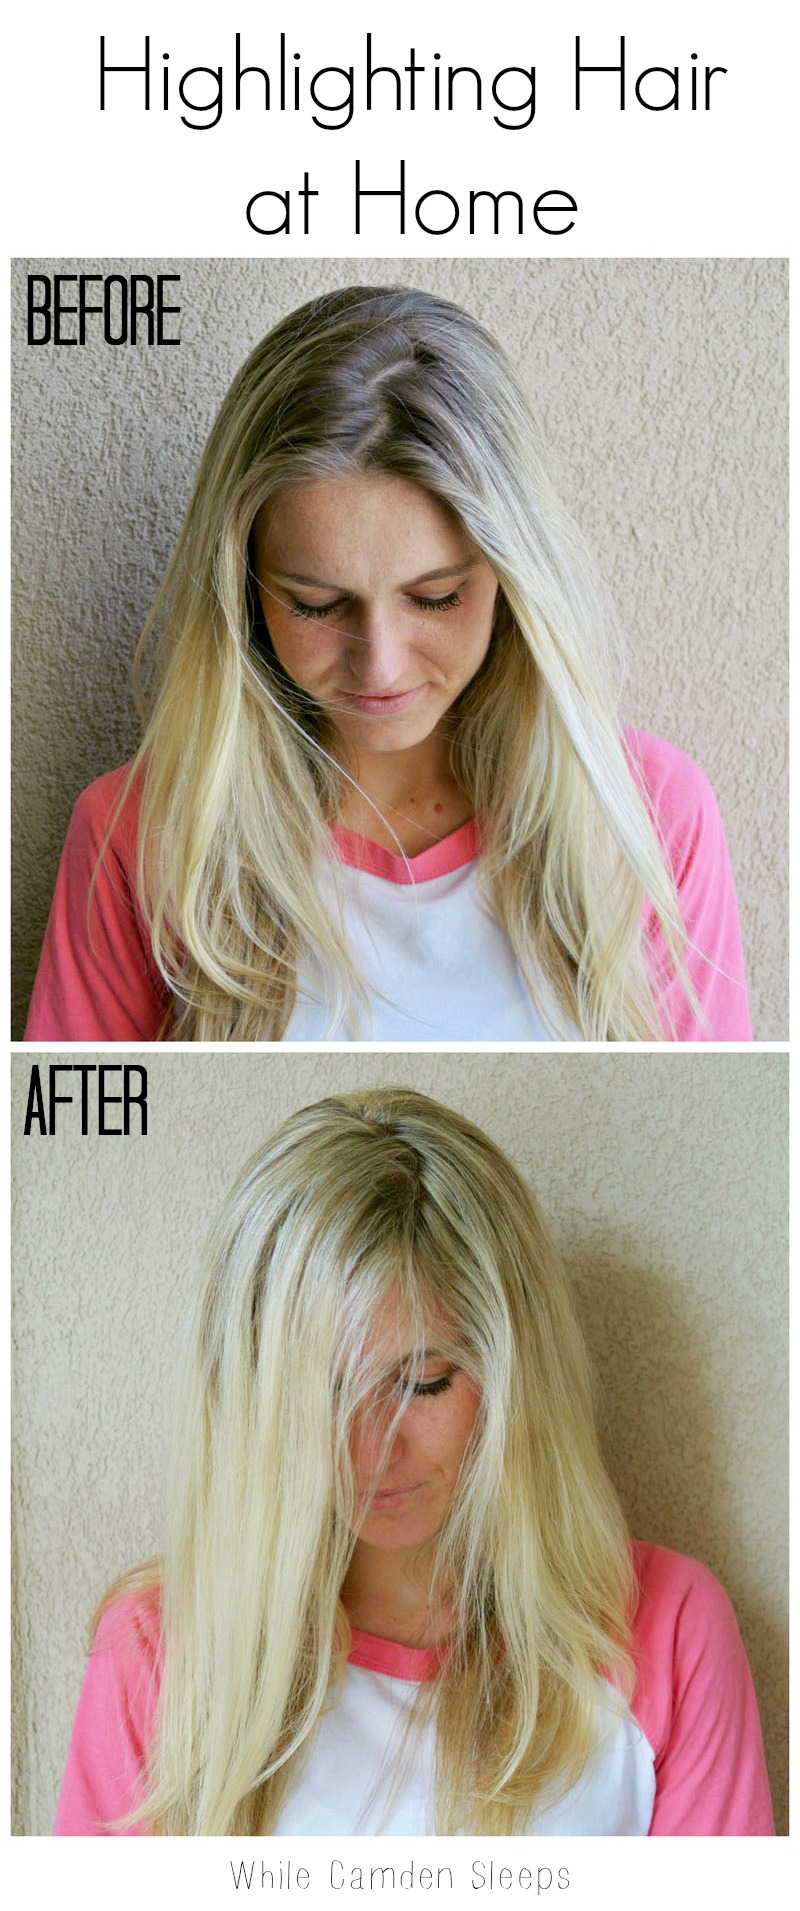 Refashioninghair Highlighting Hair At Home